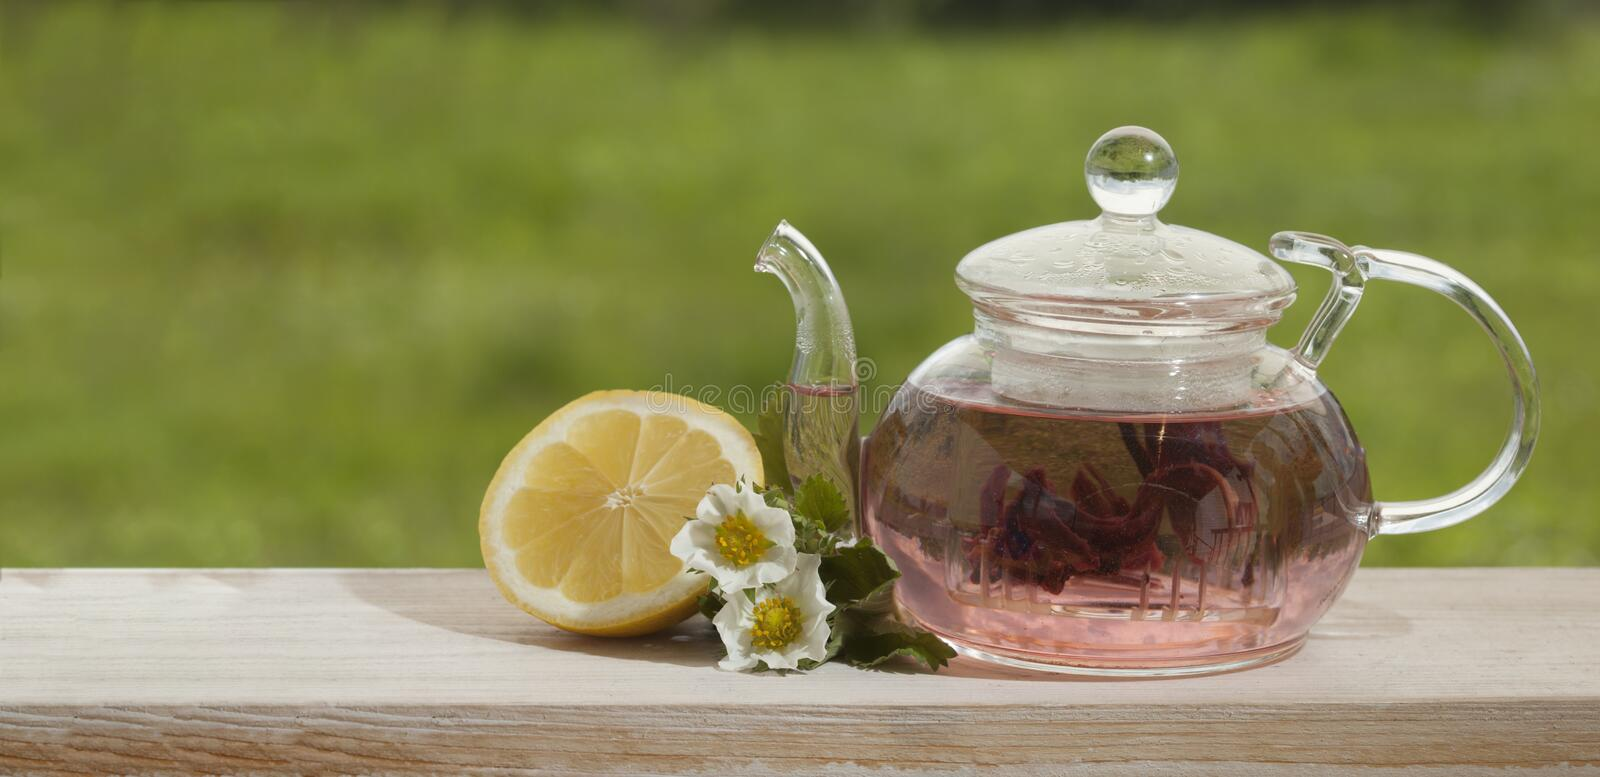 Download Teapot With Lemon Tea On A Background Of Nature Stock Photo - Image of carcade, breakfast: 113616906